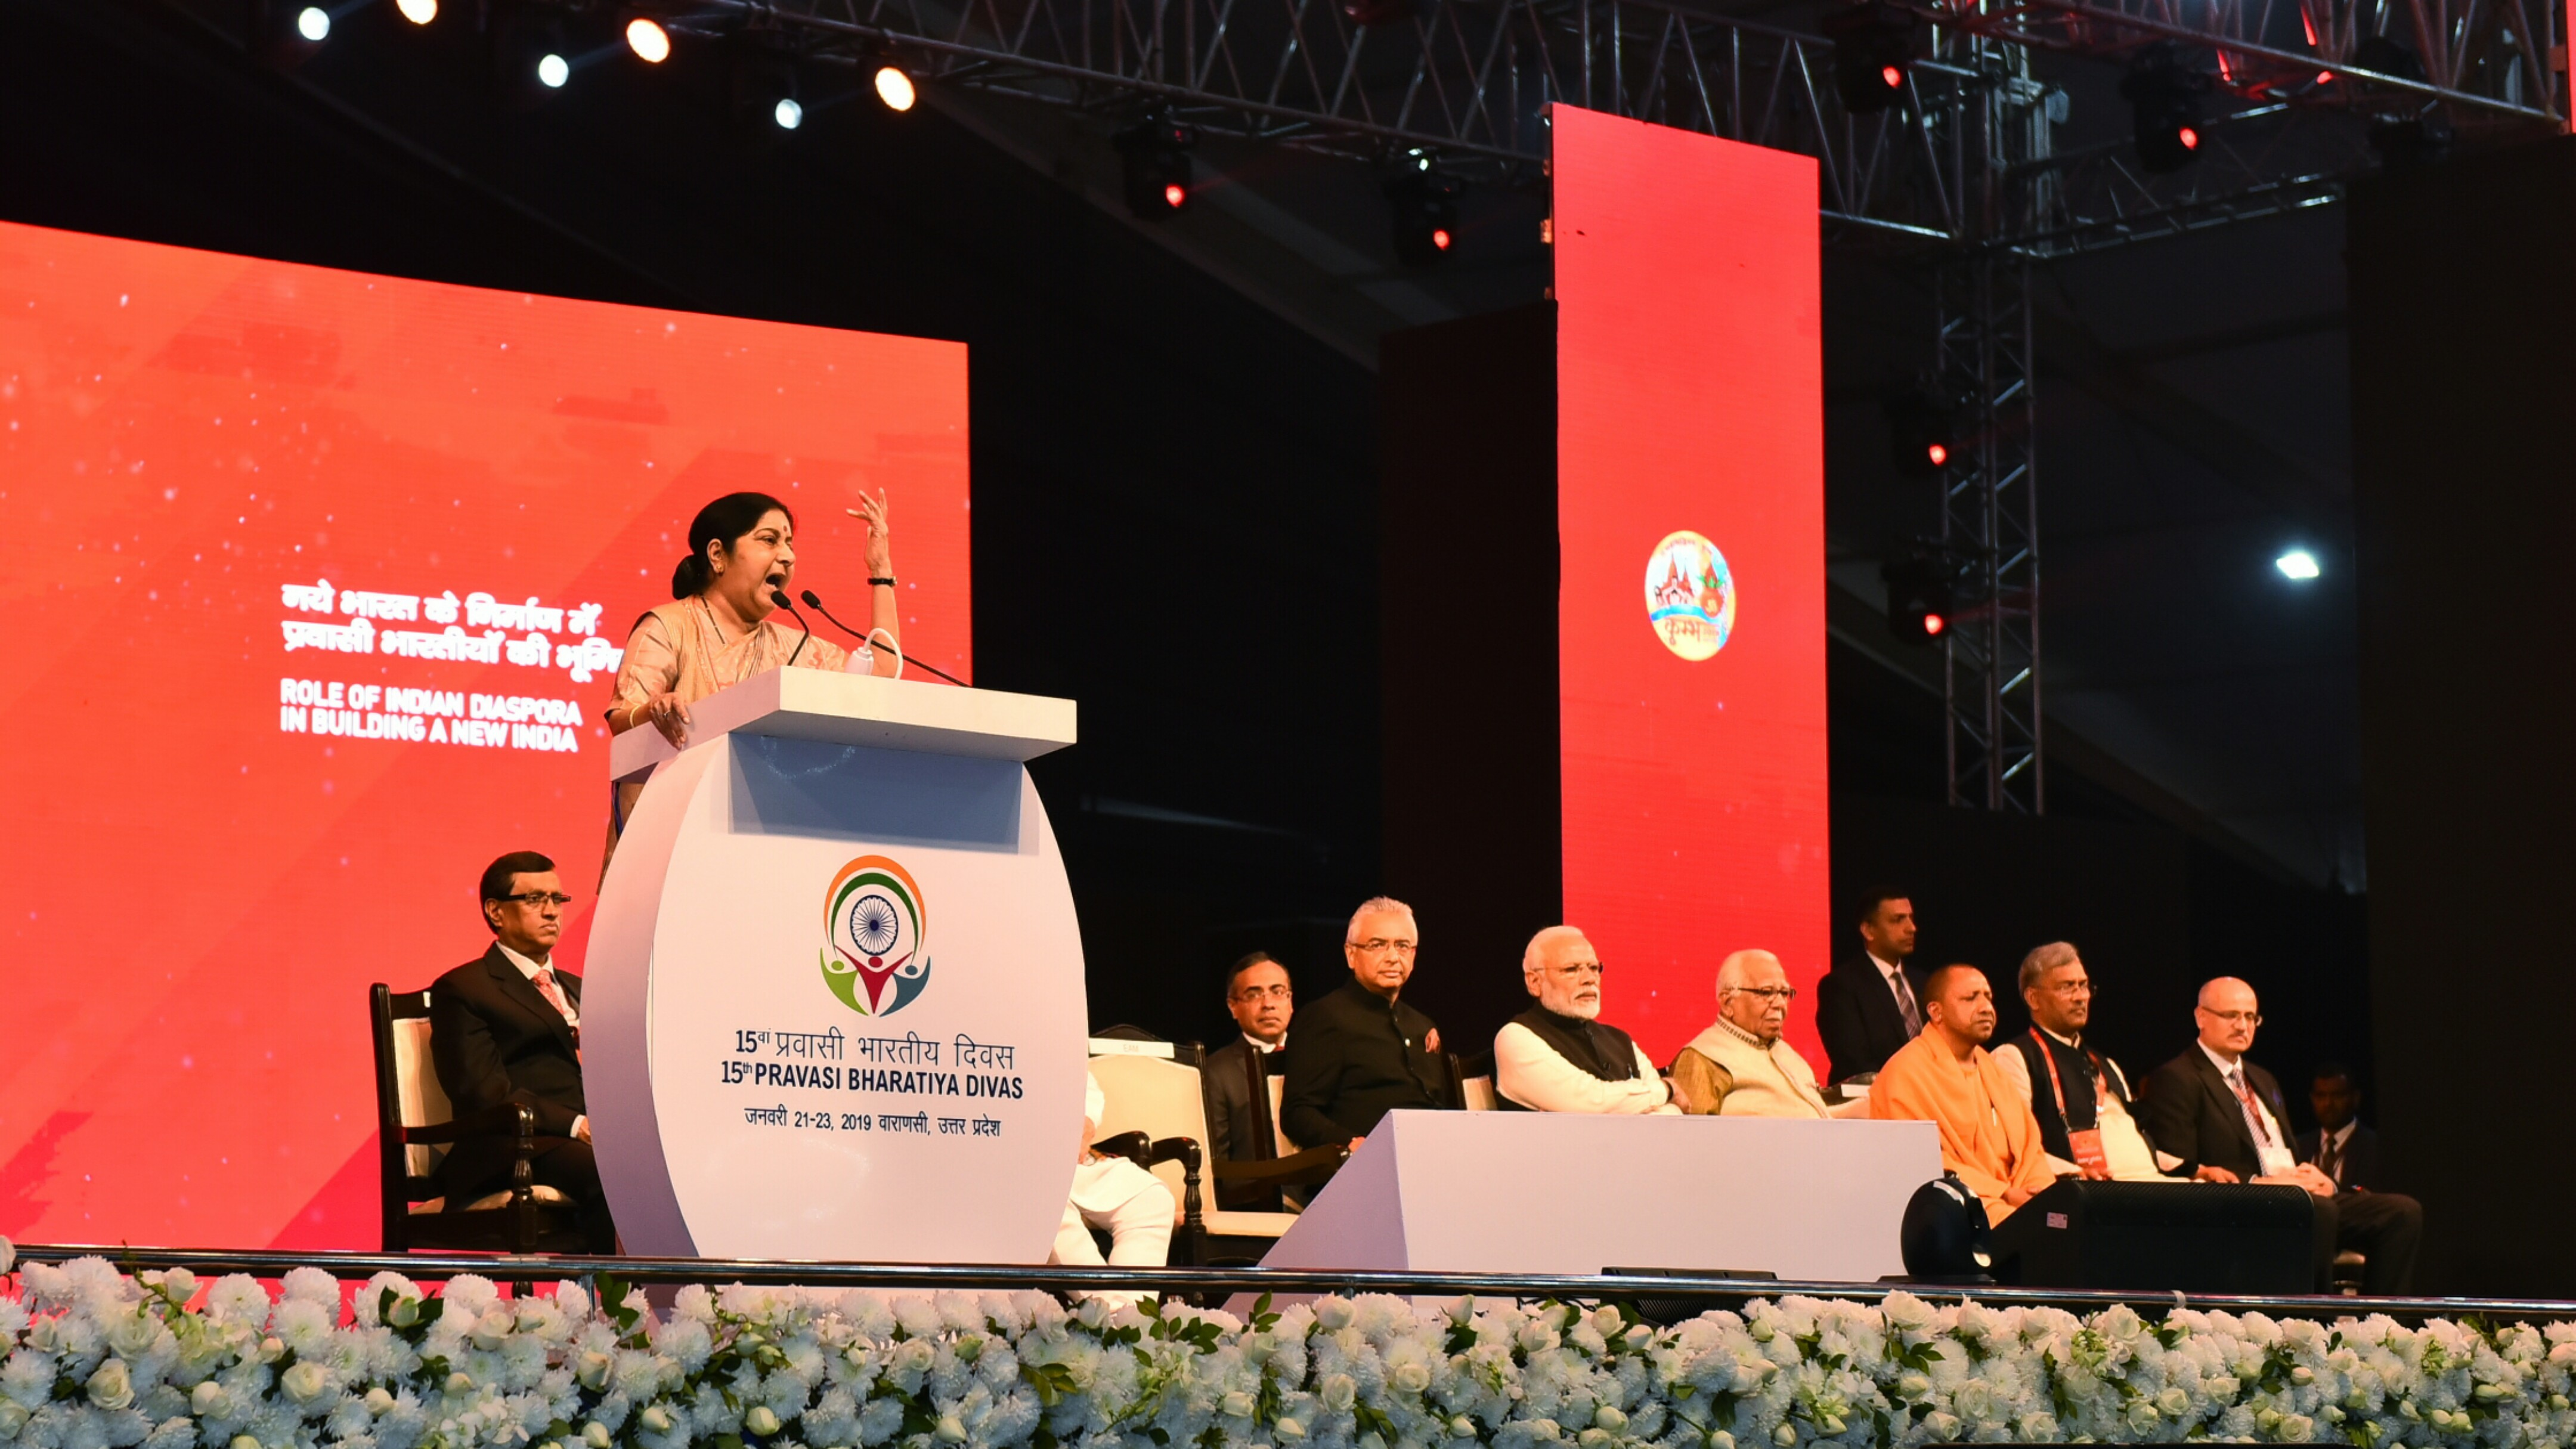 External Affairs Minister delivers her address at inauguration of 15th pravasi bhartiya divas convention-2019